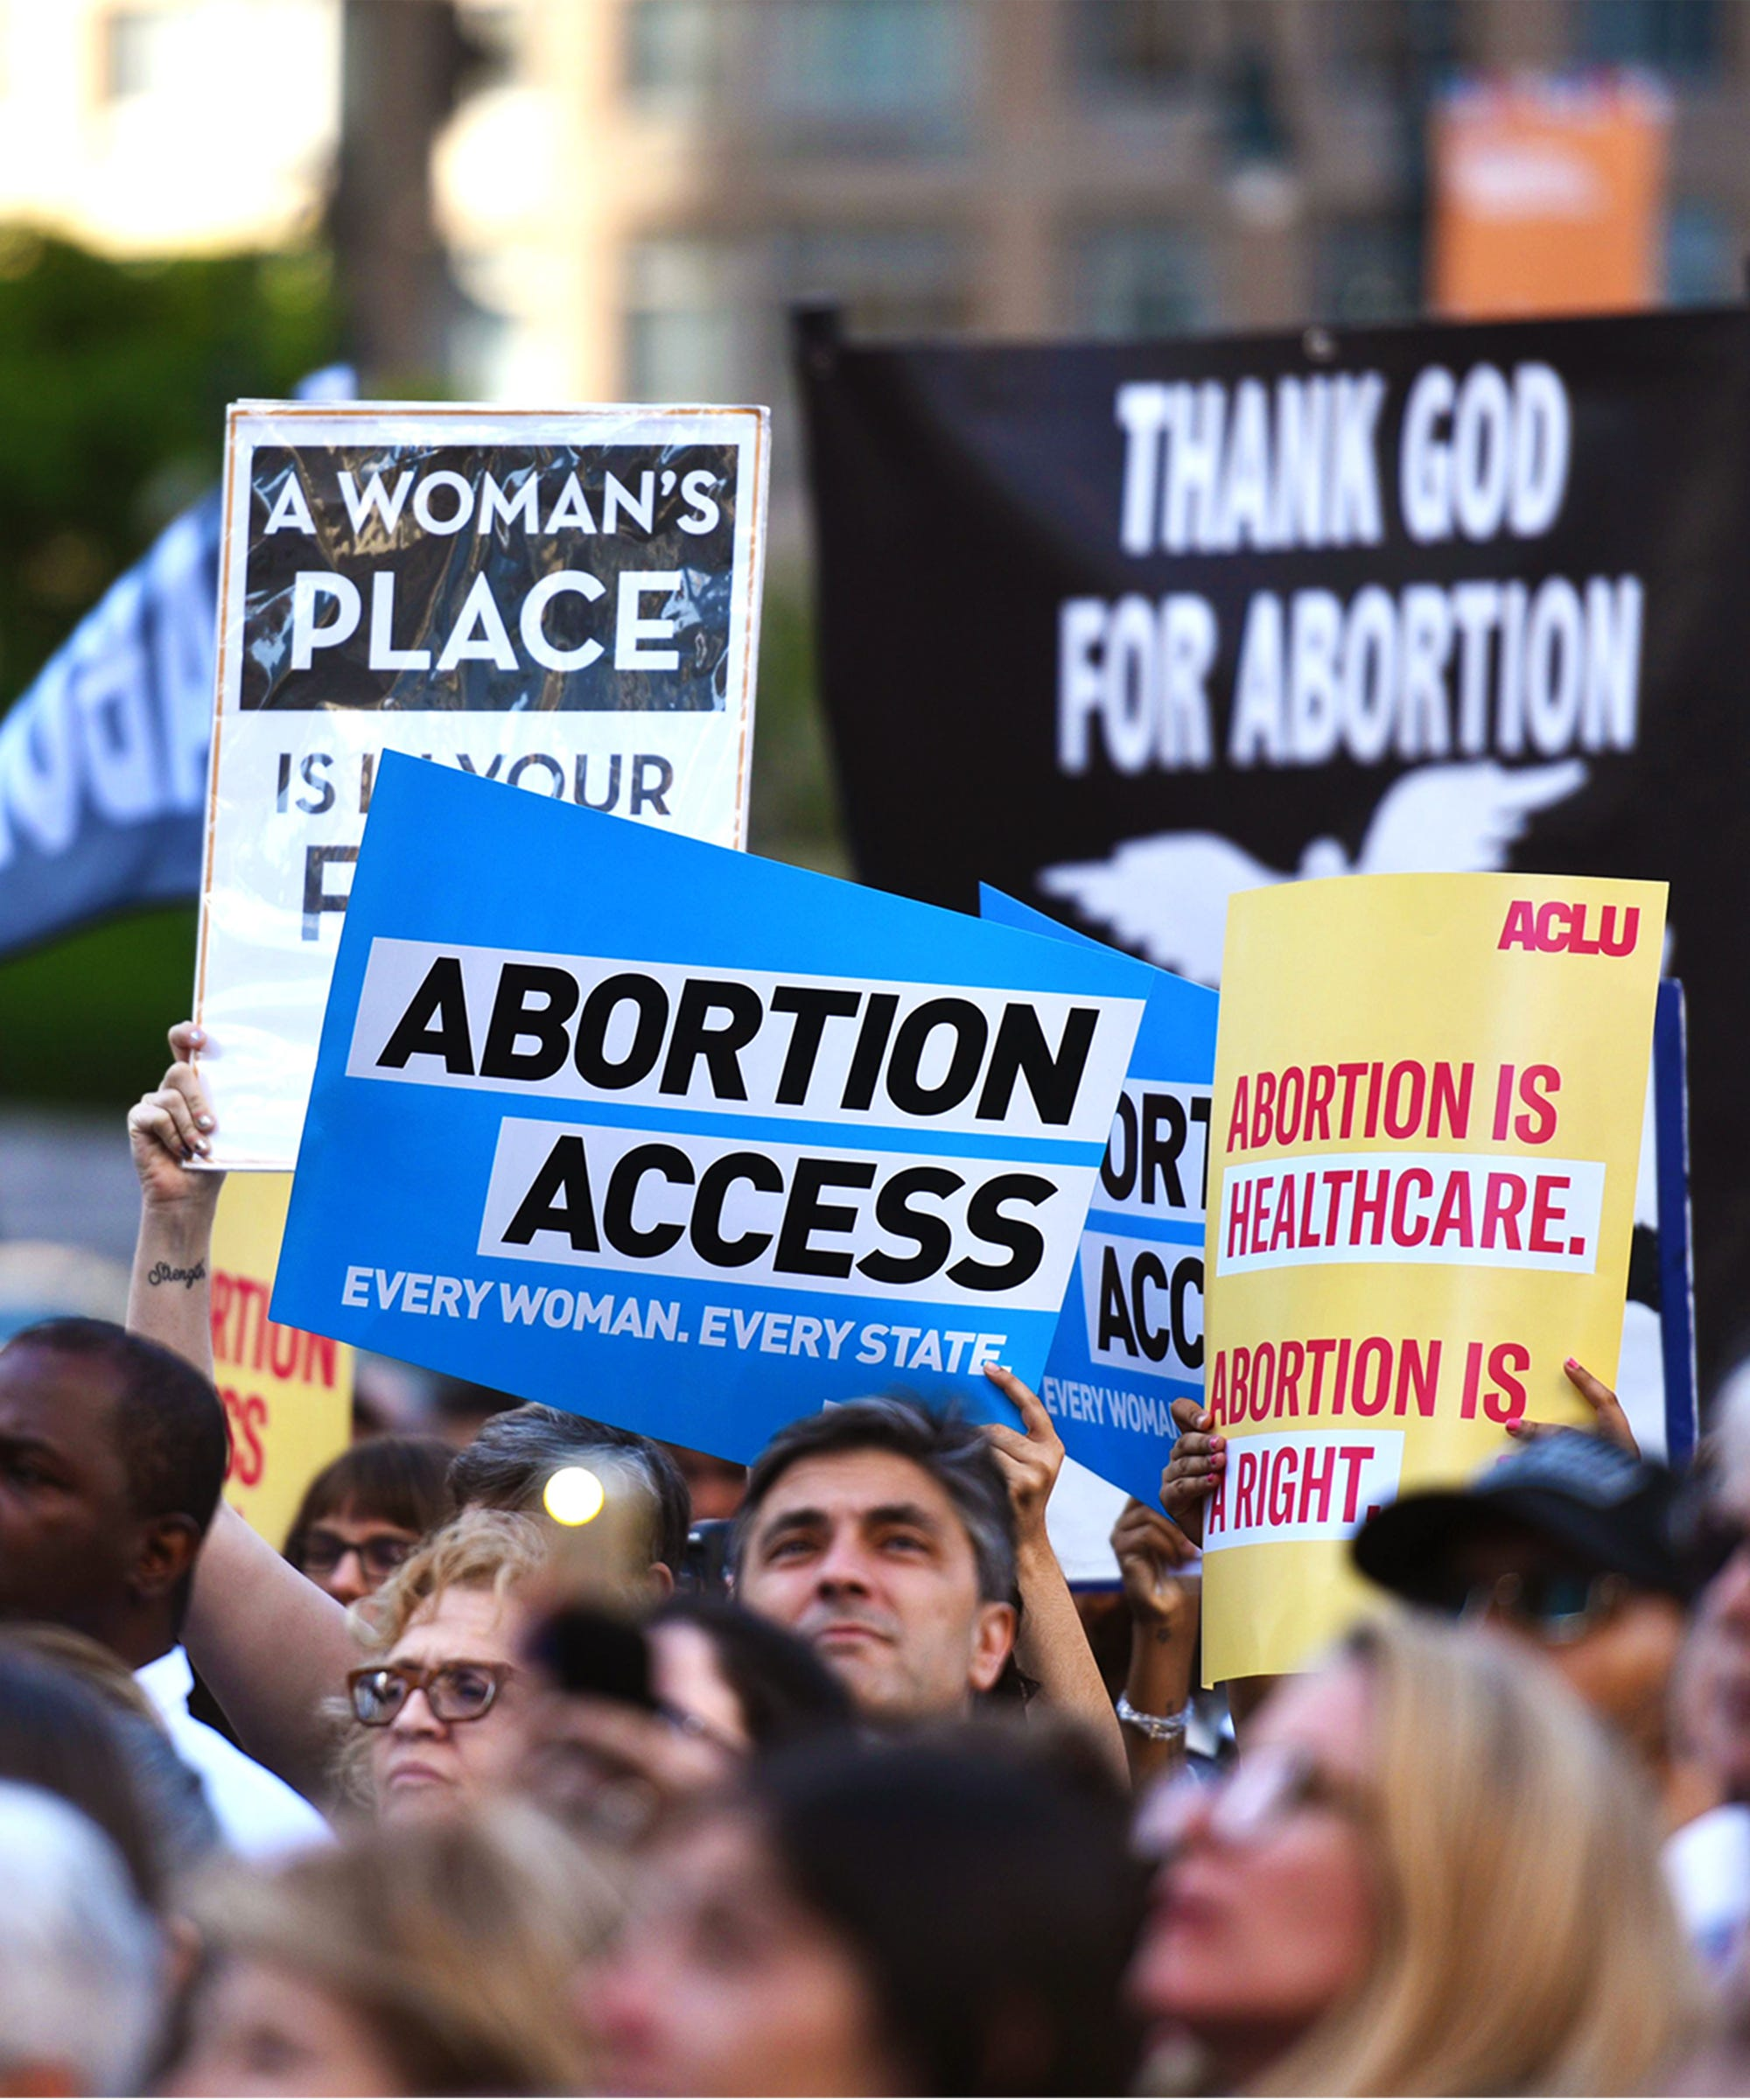 Court Allows Trump Administration To Effectively Defund Planned Parenthood